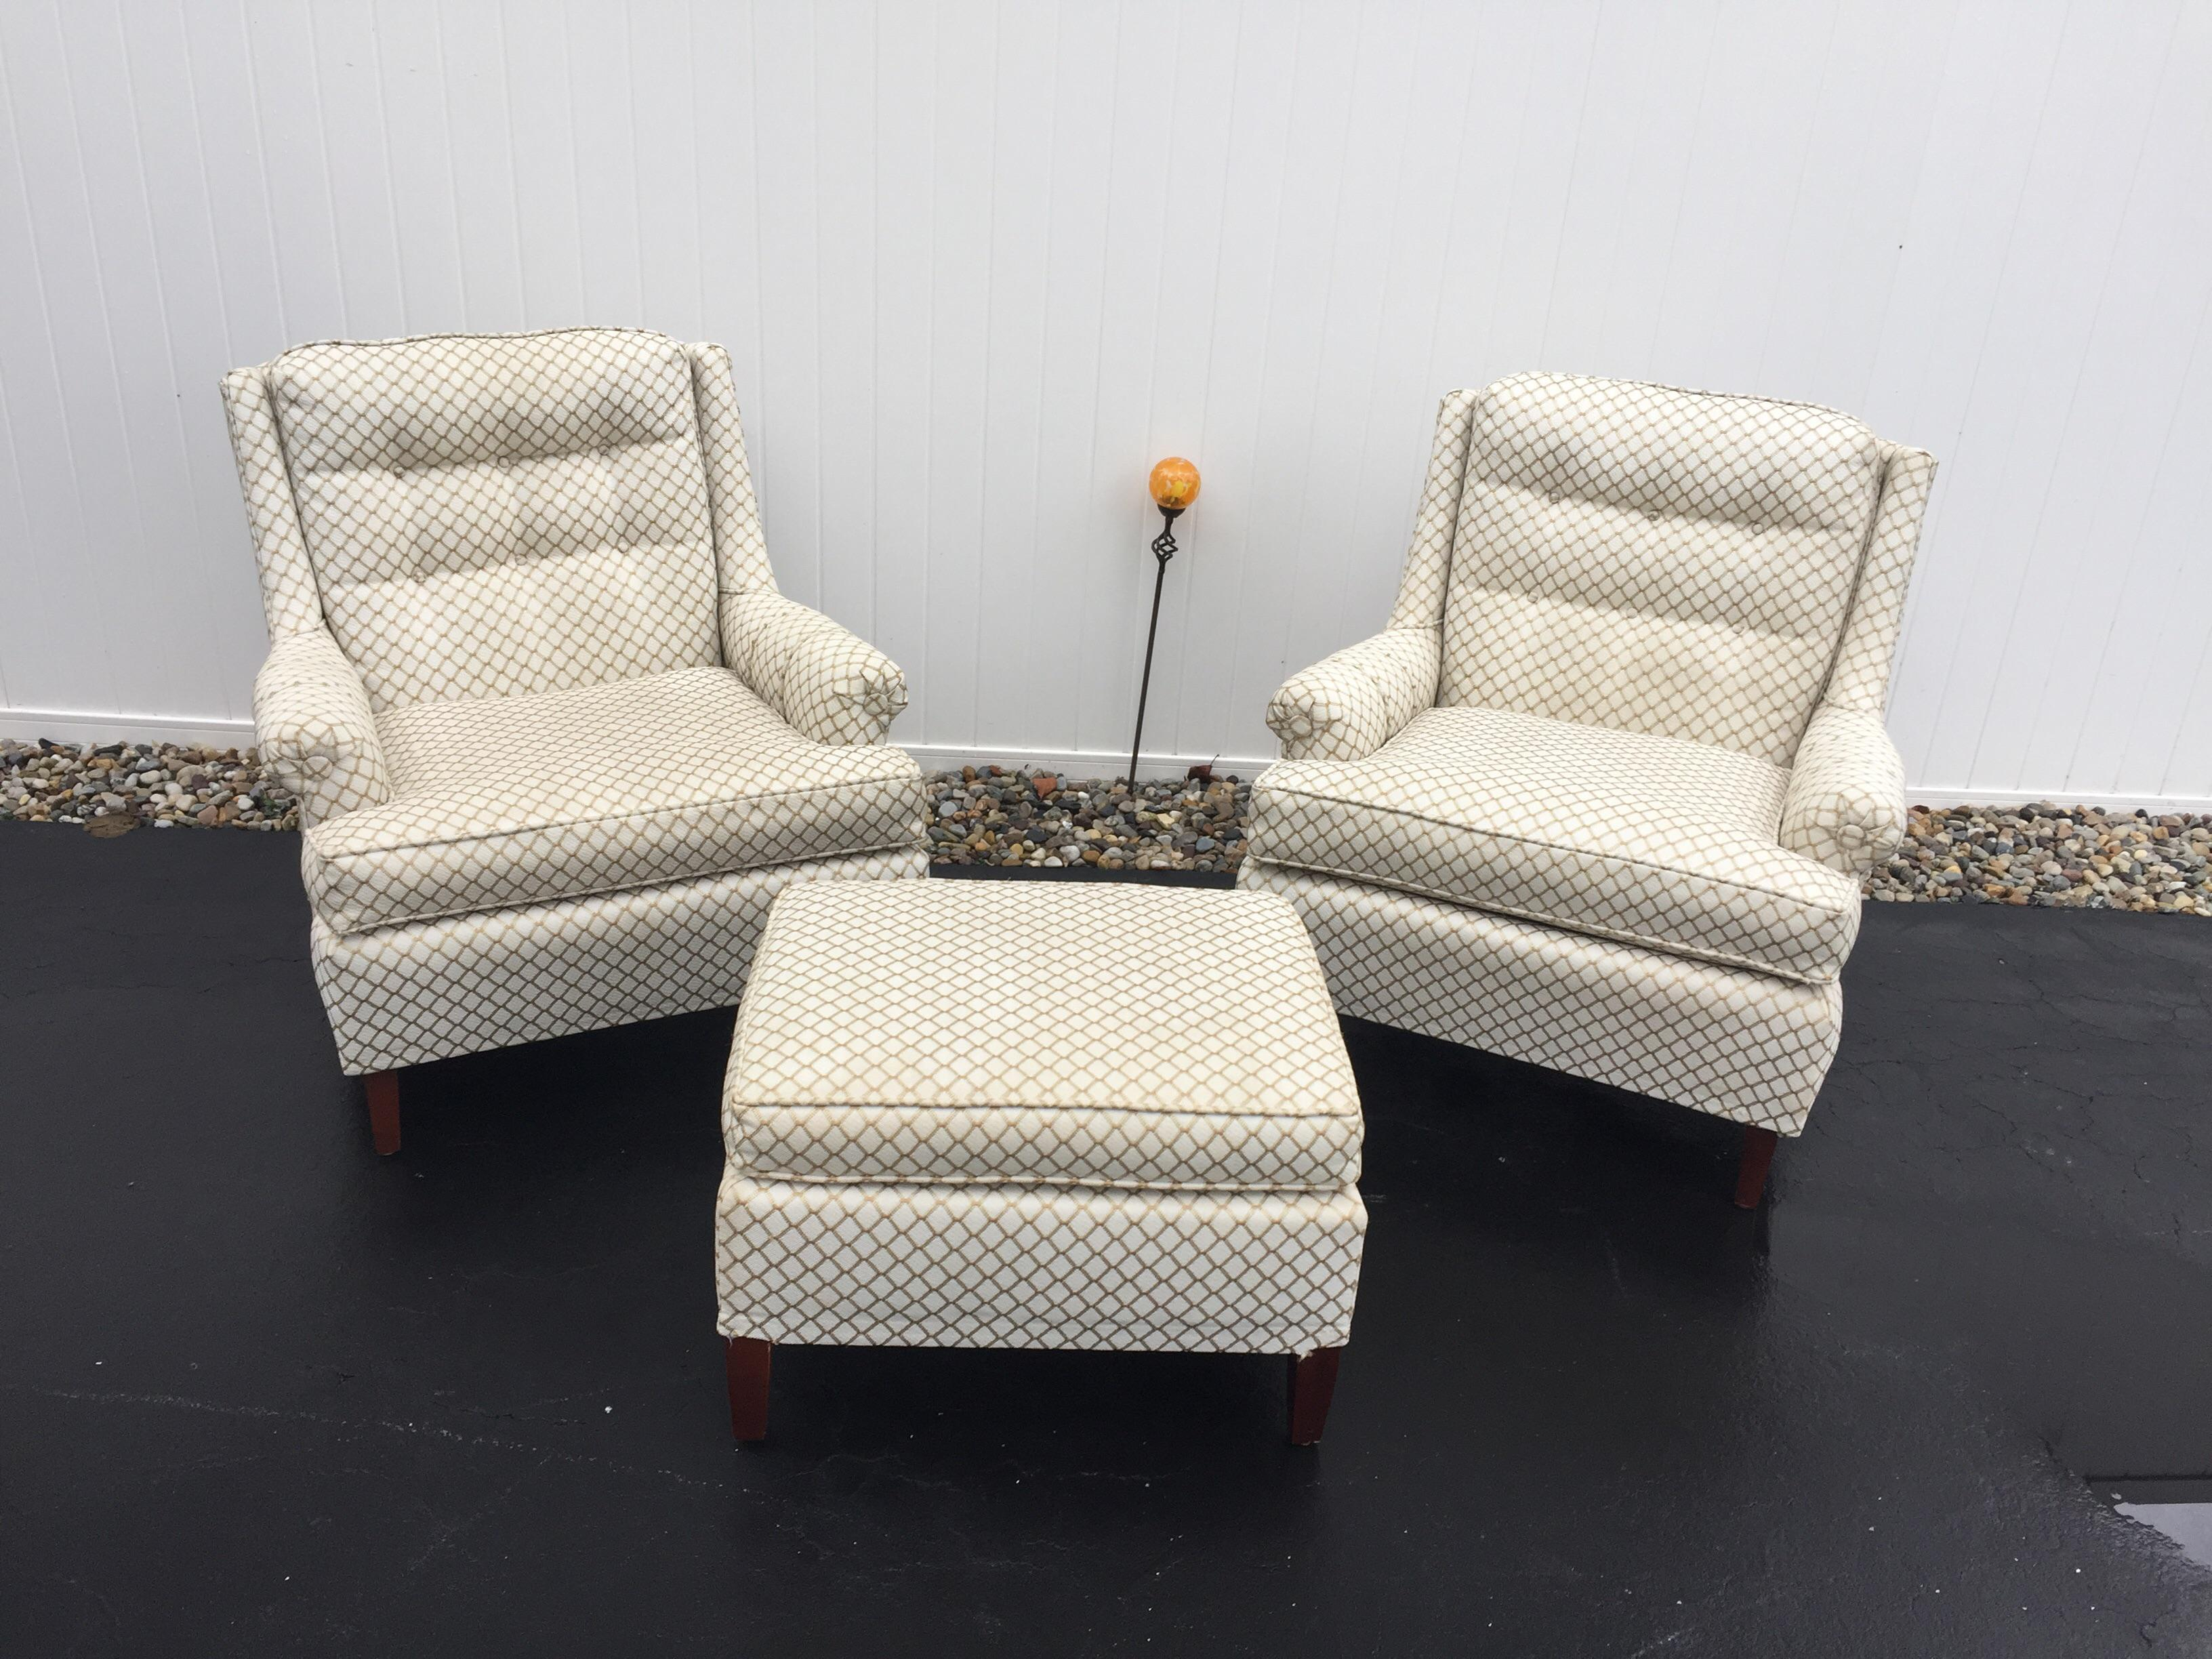 Vintage Pair Of Hollywood Regency Chairs With One Ottoman By Hammary. Chairs  Are From Late